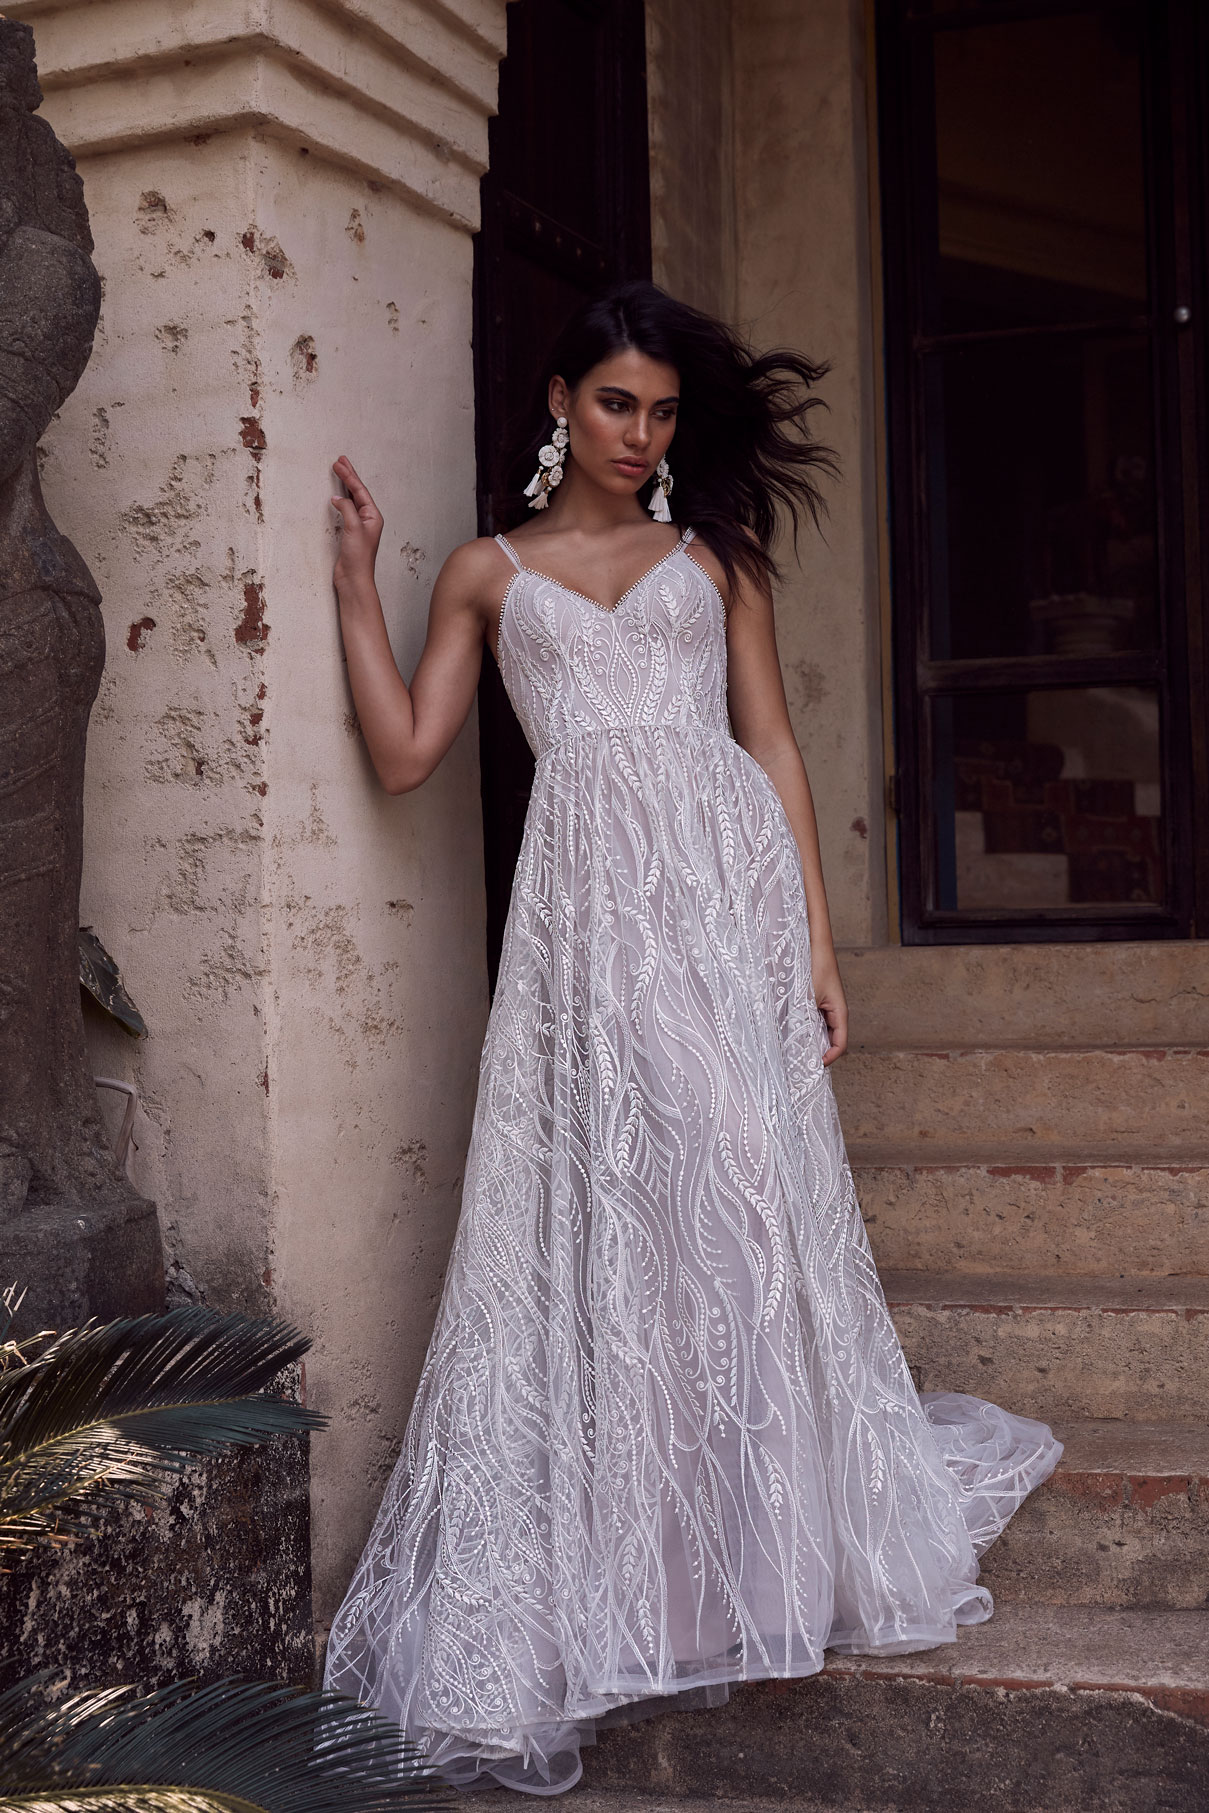 ZAINE-EY083-EVIE-YOUNG-BRIDAL1